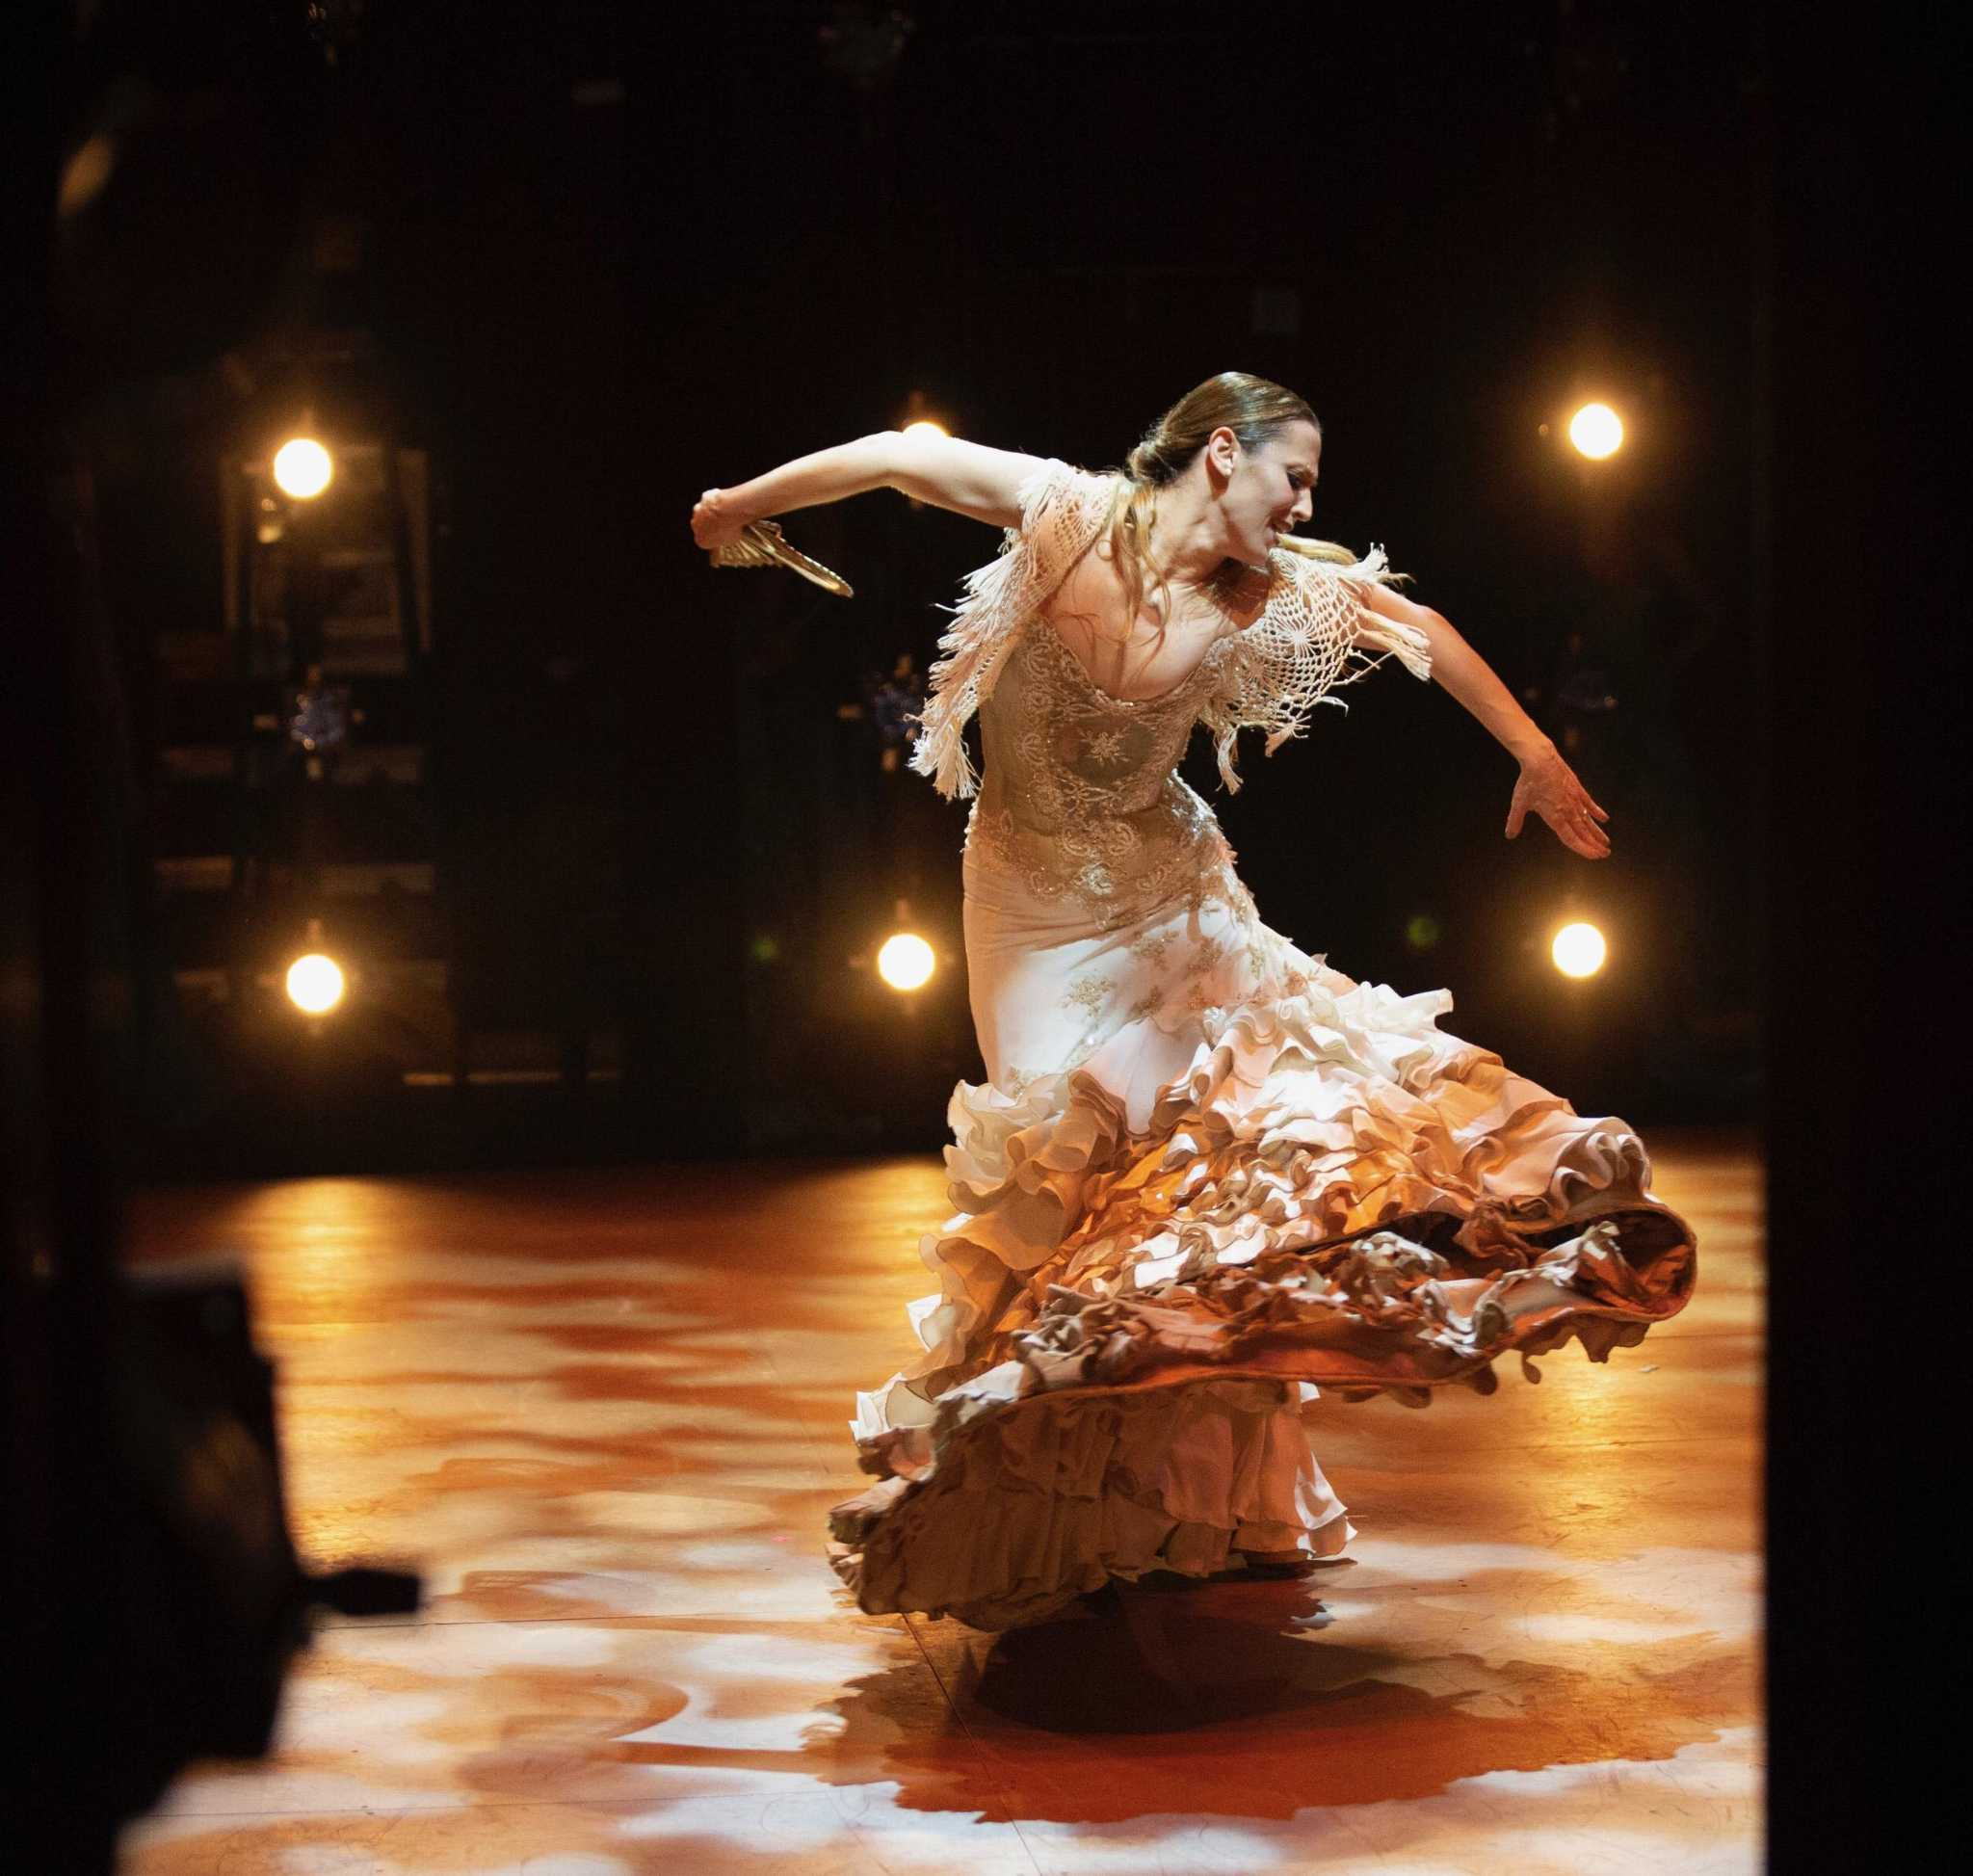 Siudy Garrido puts a fresh stamp on flamenco traditions